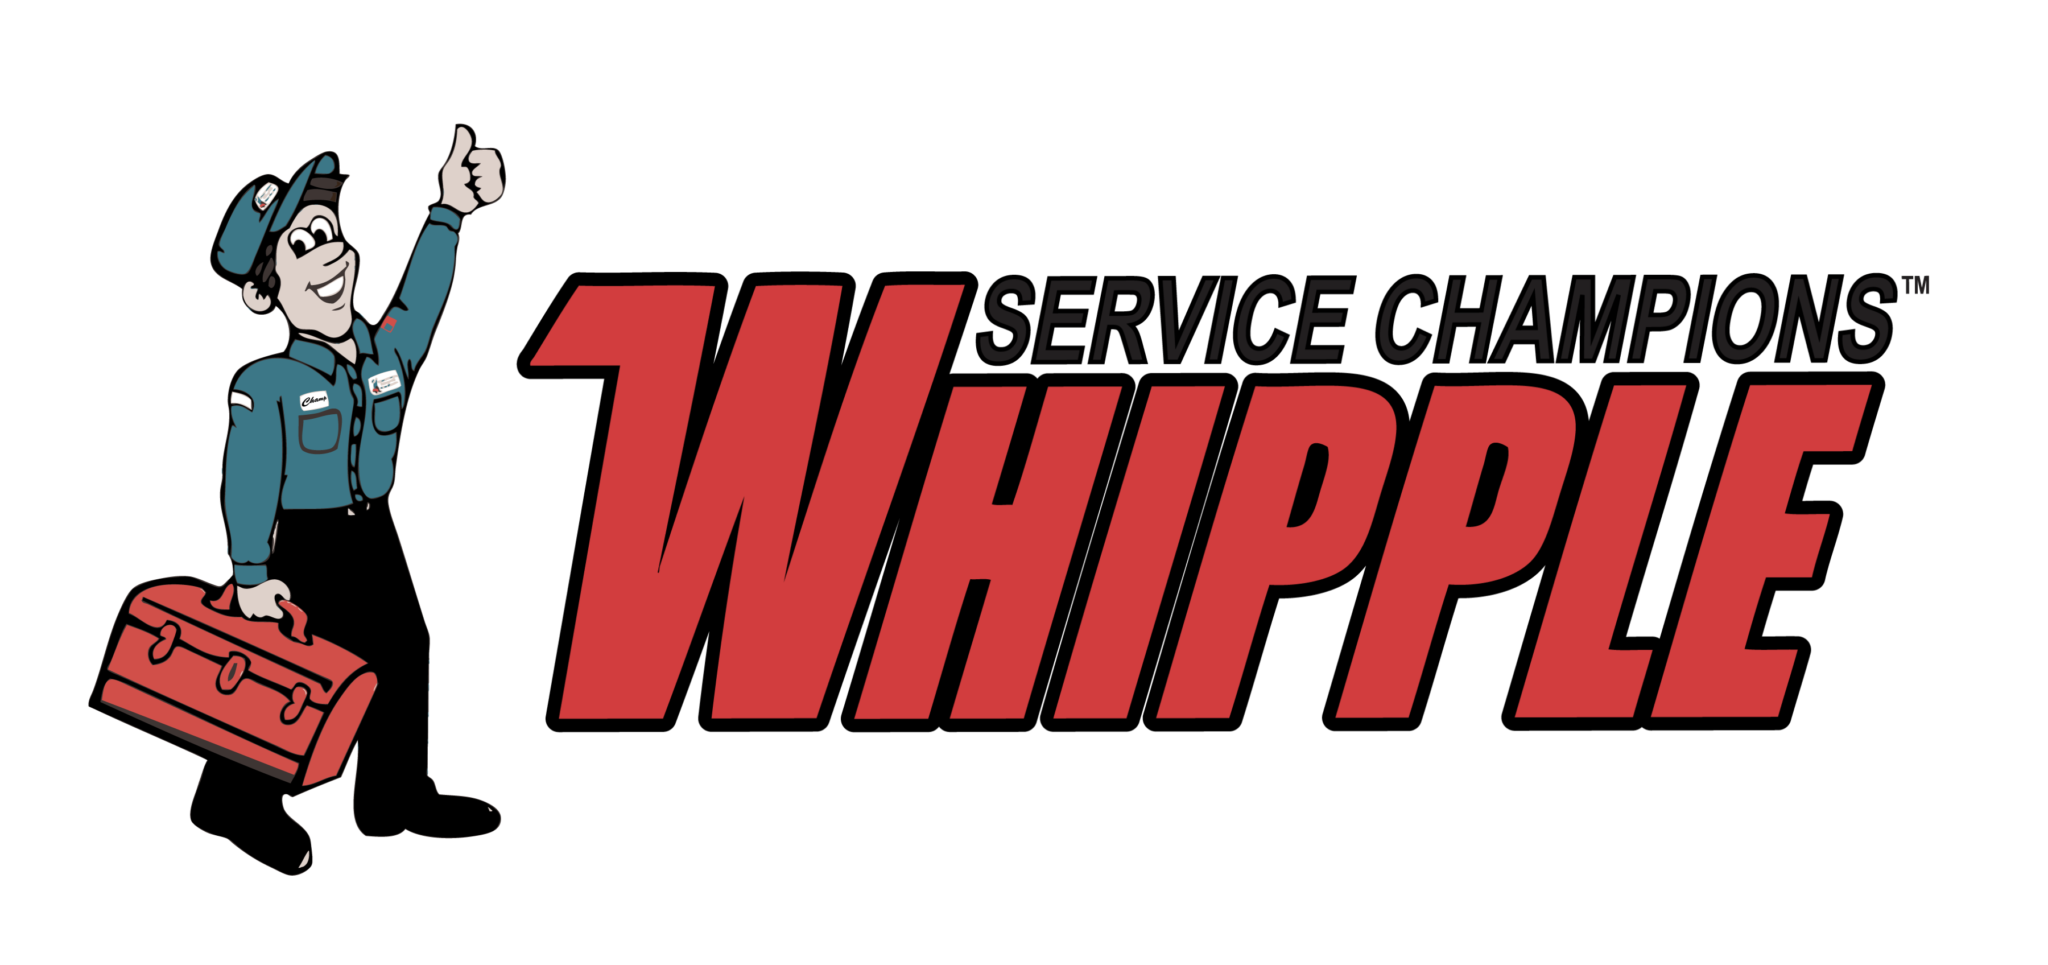 Whipple Service Champions